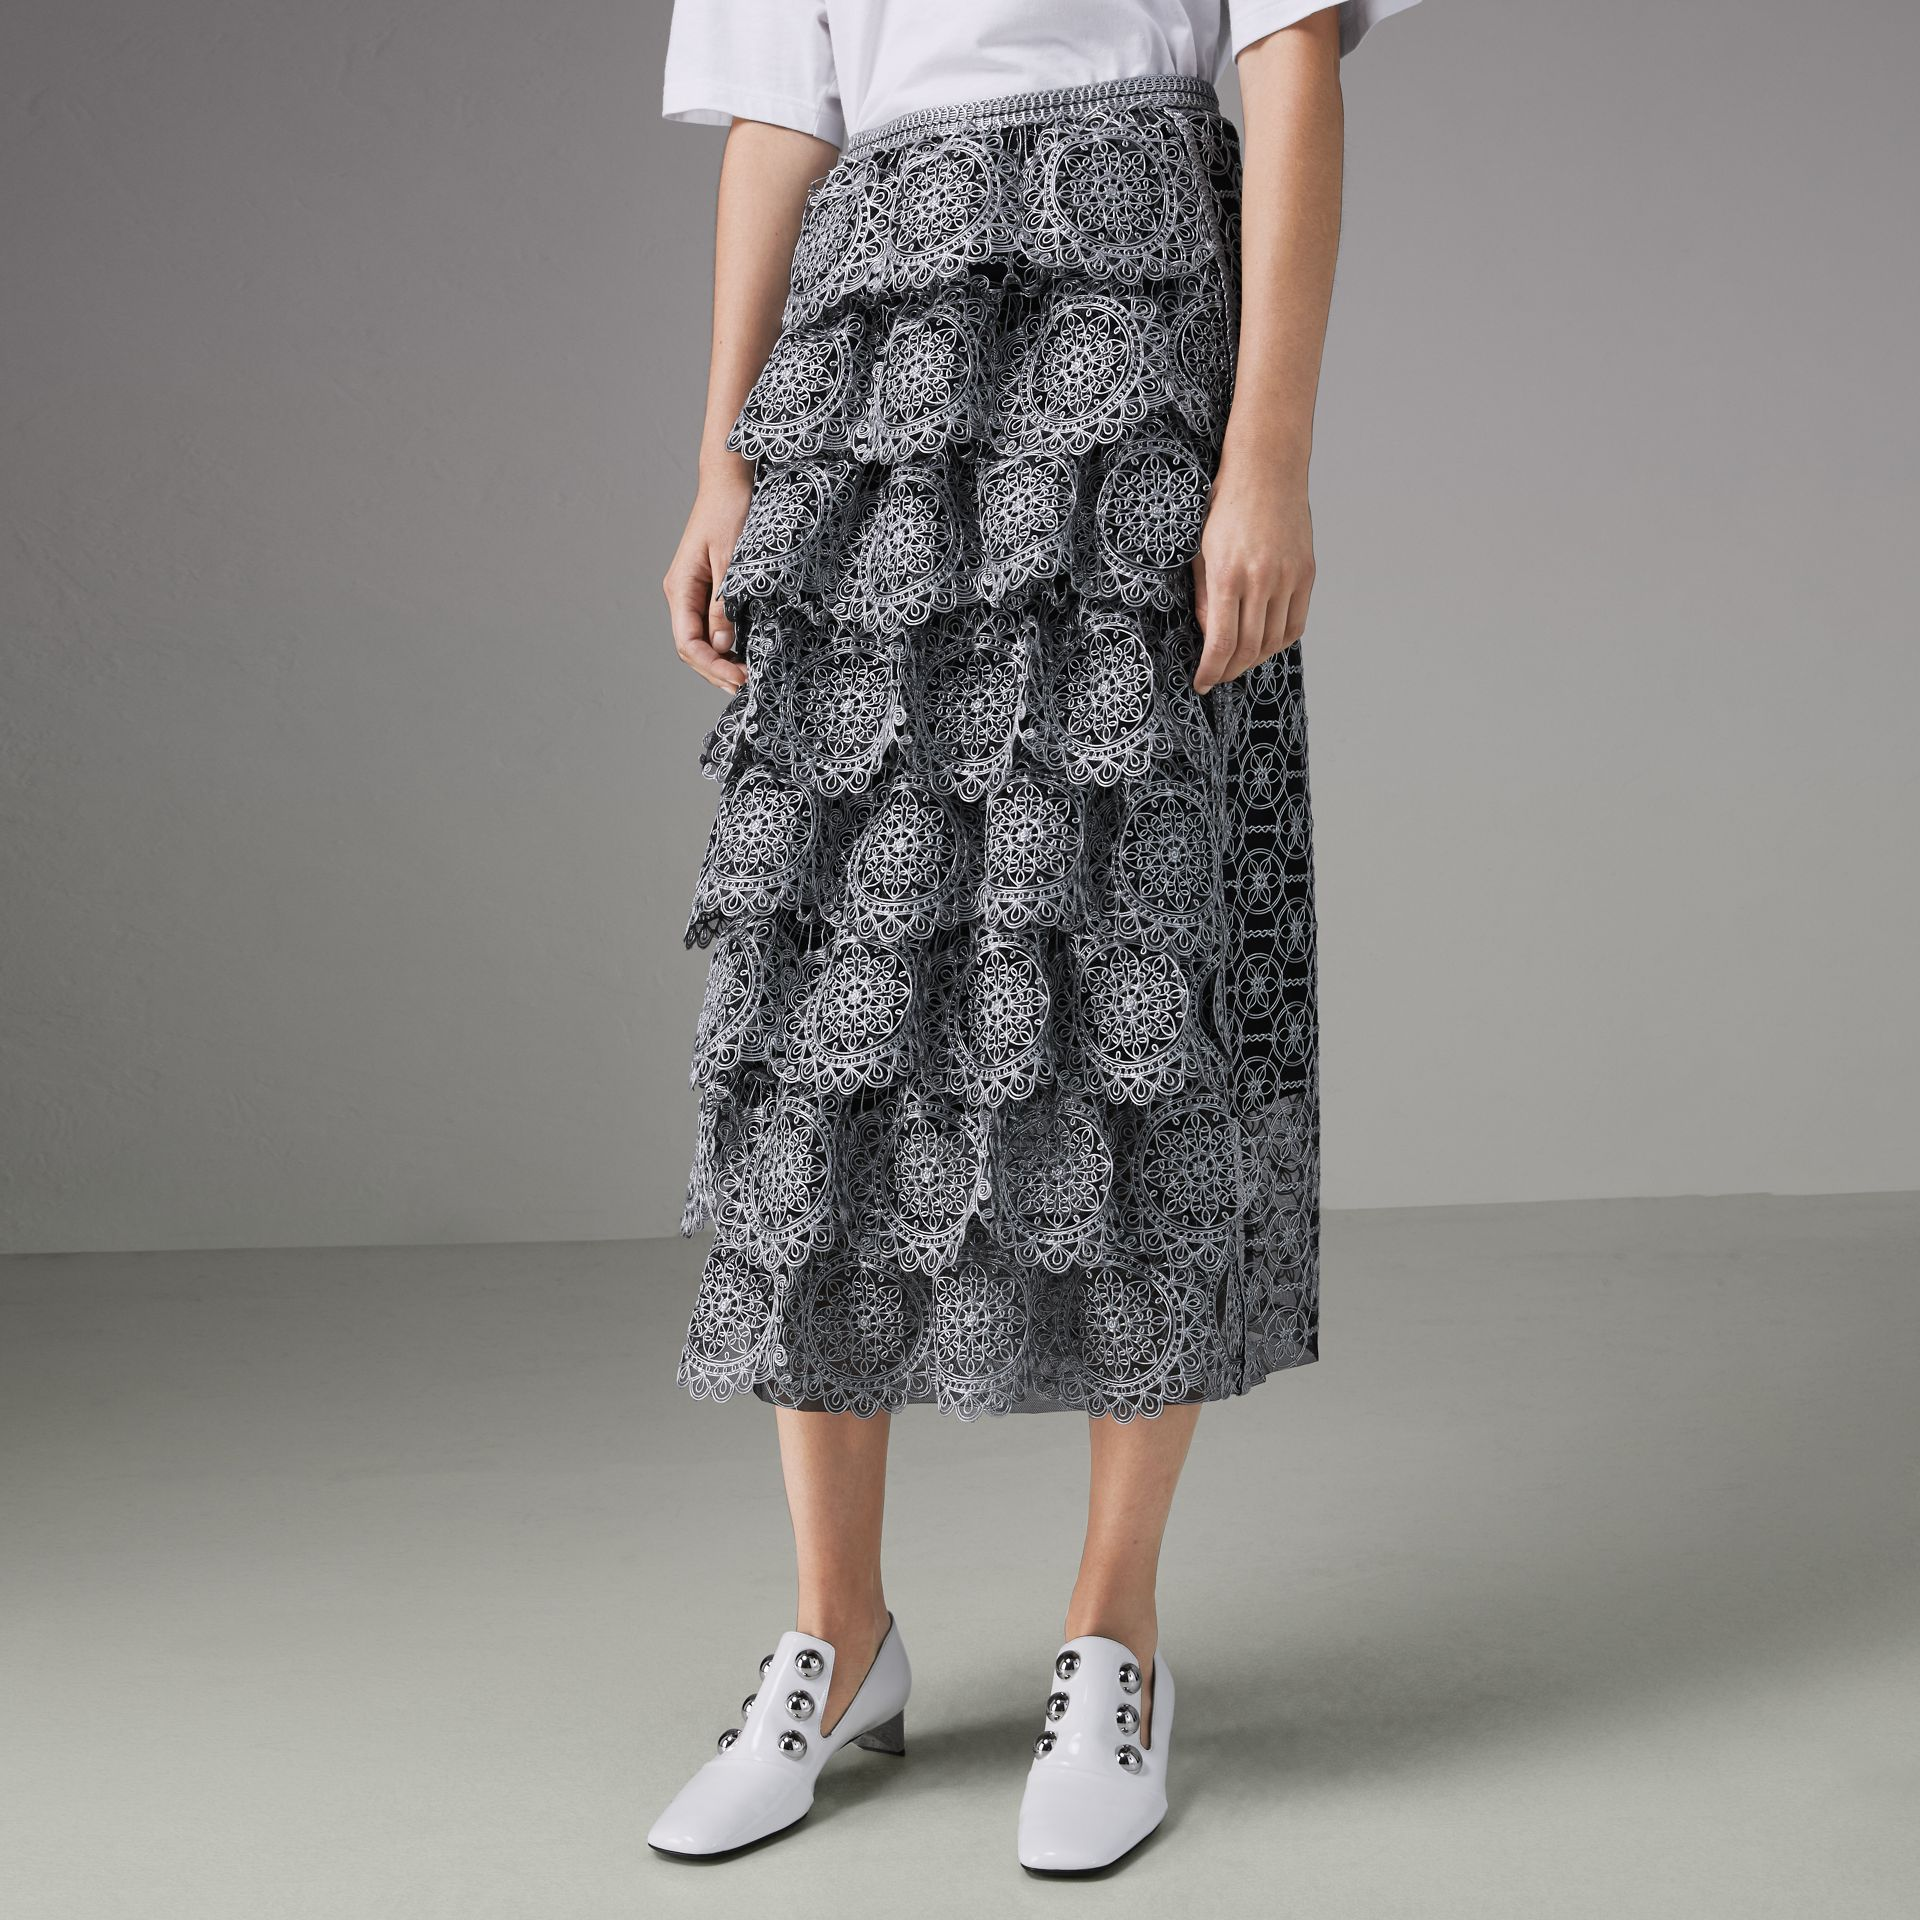 Tiered Silicone Lace Skirt in Silver - Women | Burberry Canada - gallery image 4